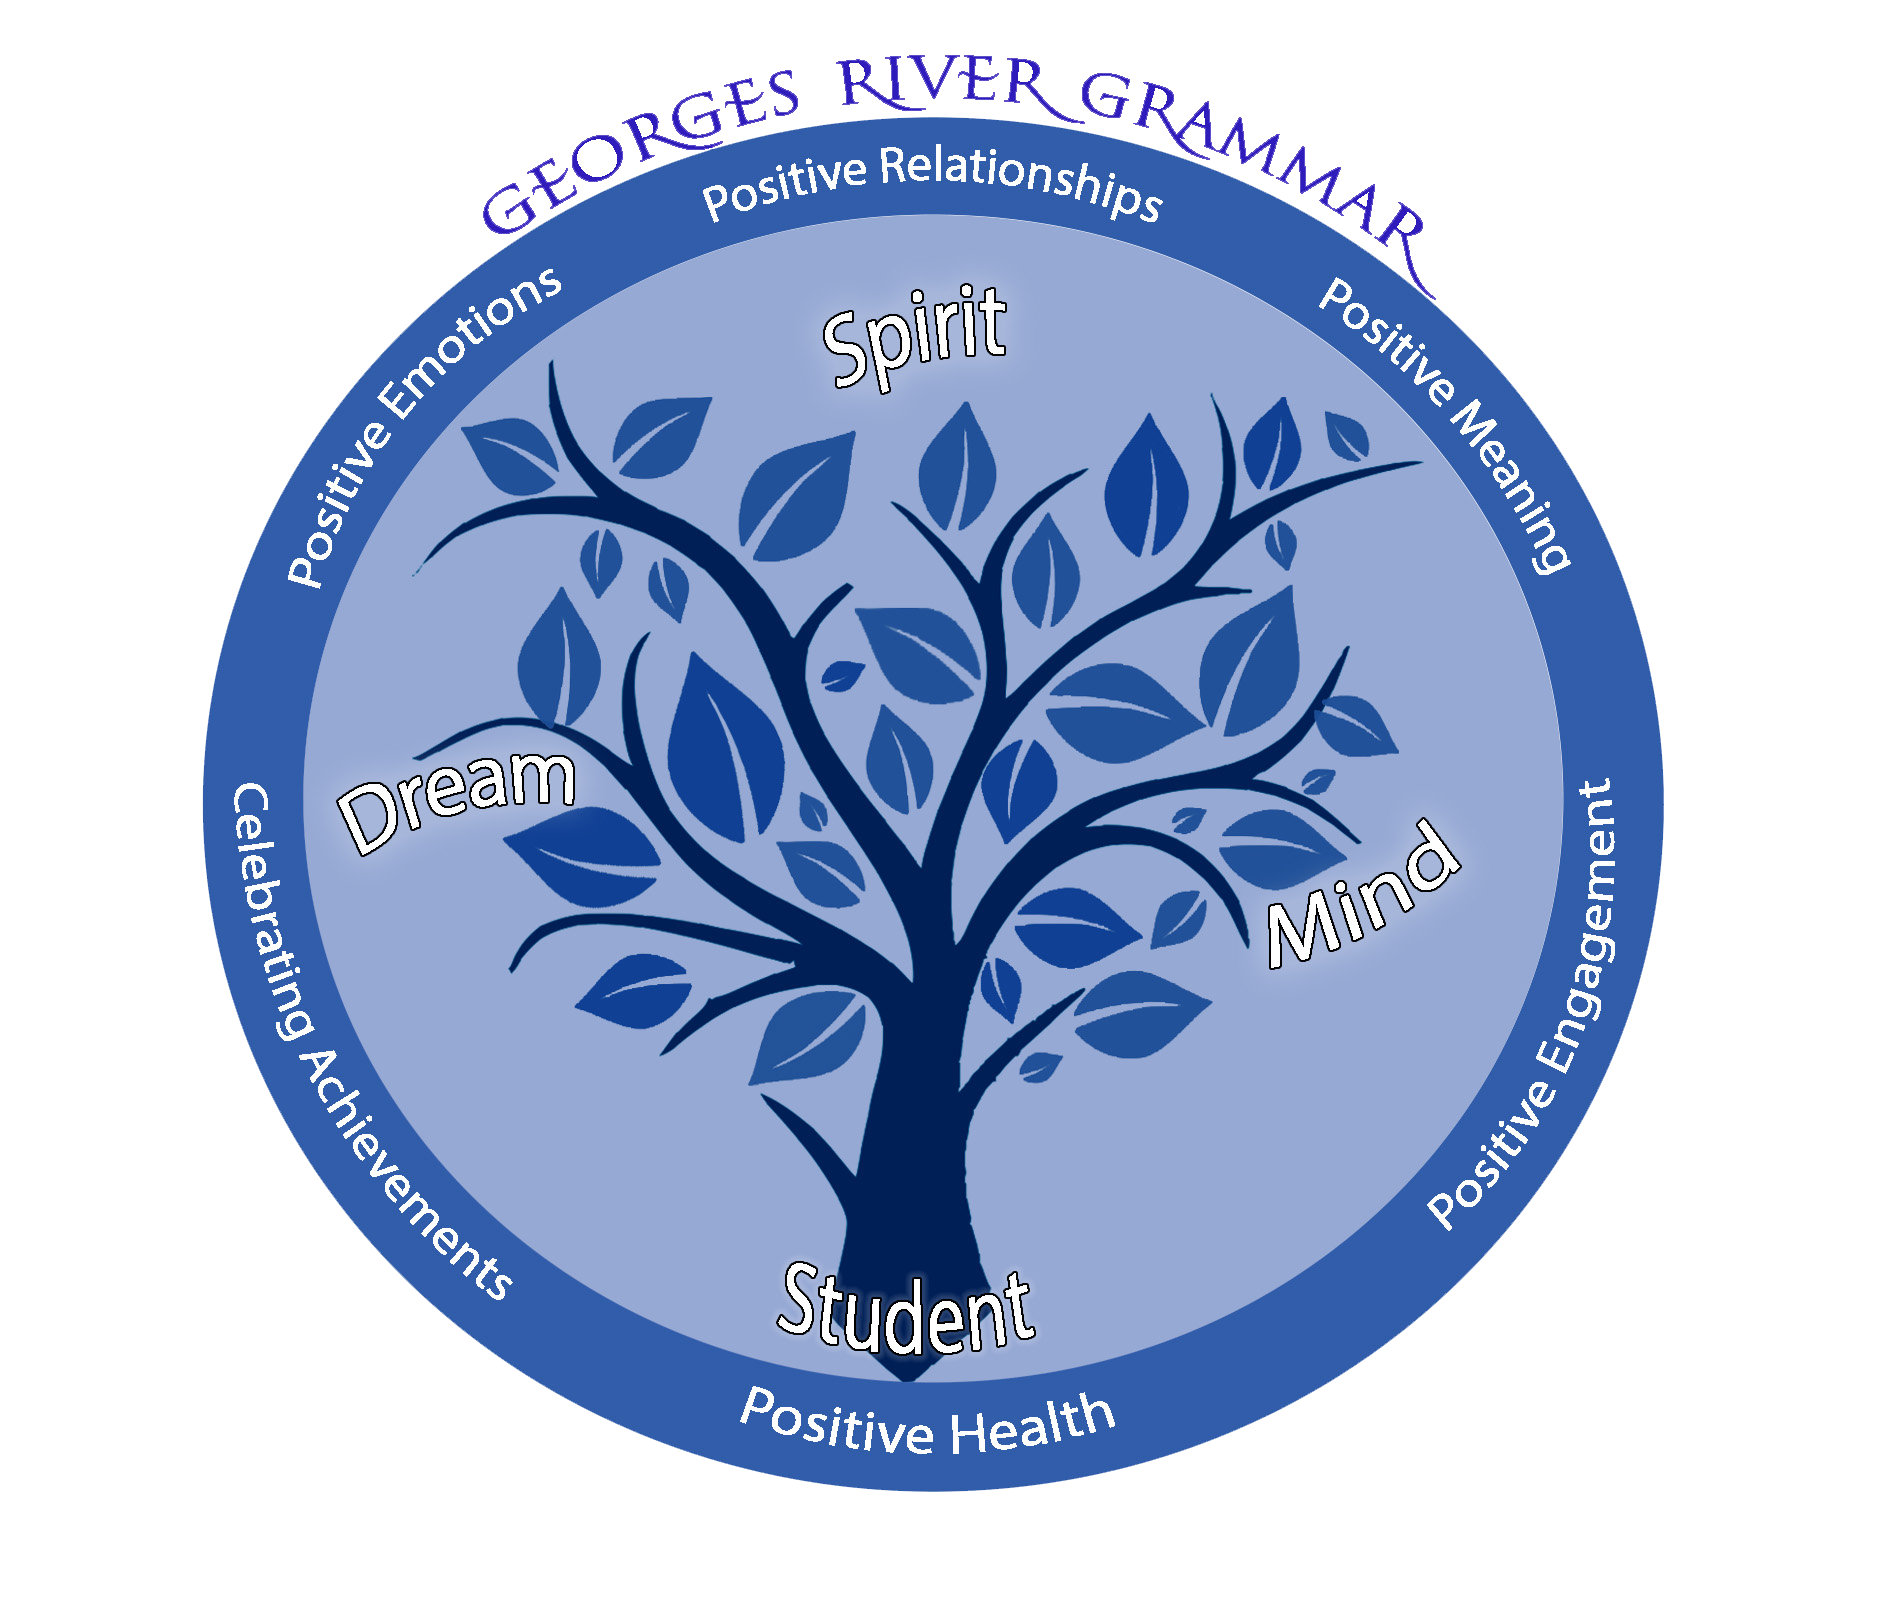 School_Life-Studen_Wellbeing-Postive_Thinking_Model.png?mtime=20171106134042#asset:1731